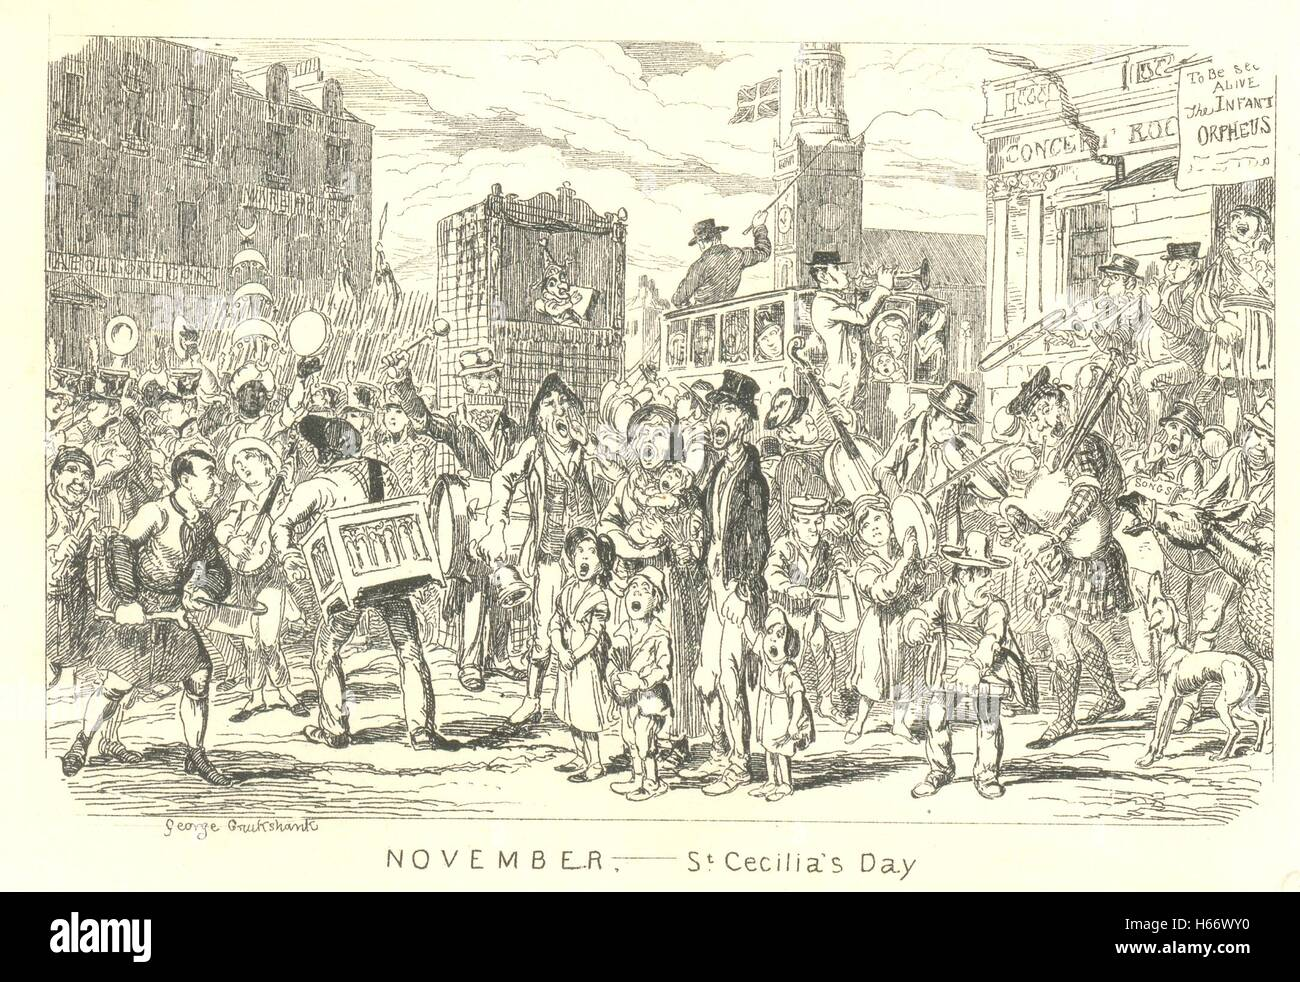 Engraving by George Cruikshank for St Cecilia's Day, 22nd November - Stock Image